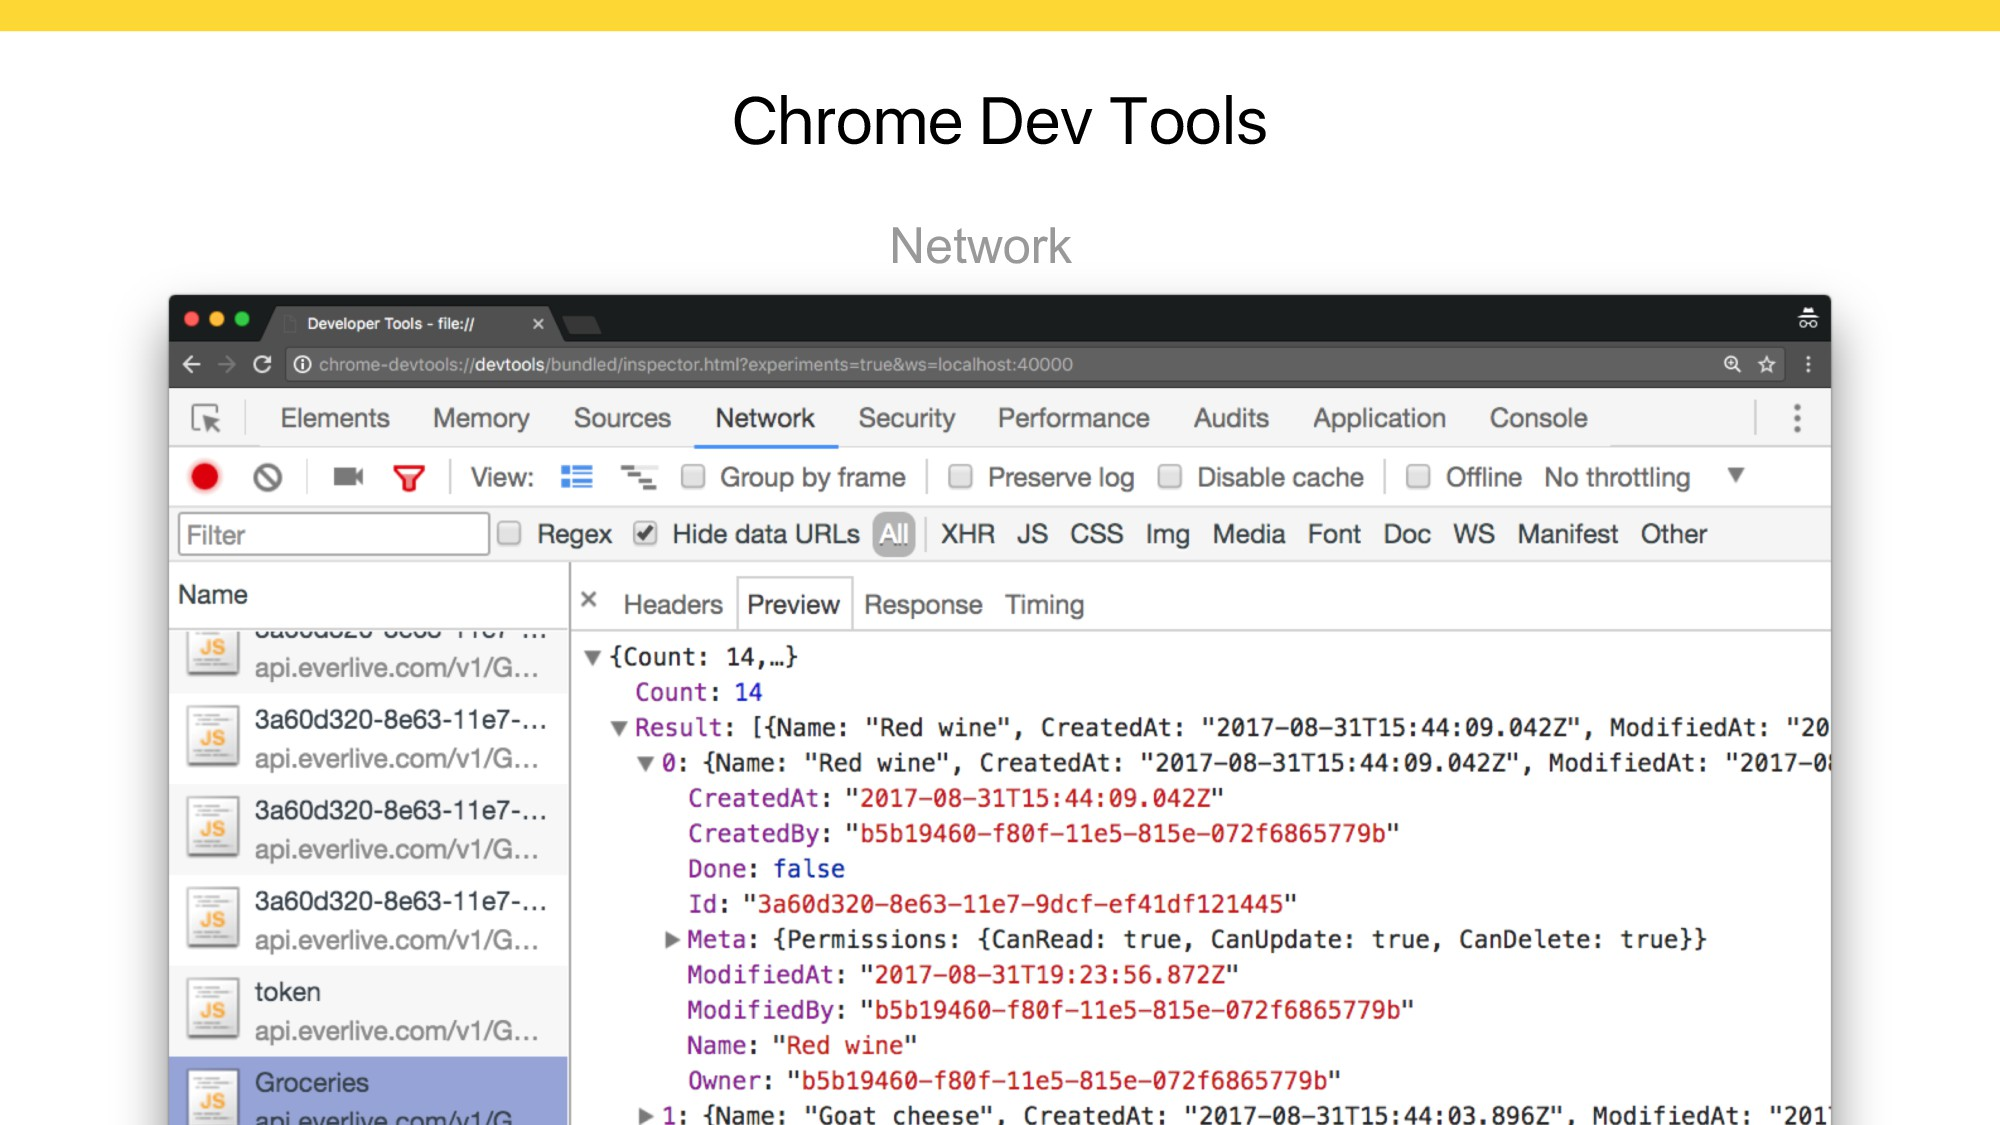 Chrome Dev Tools Network